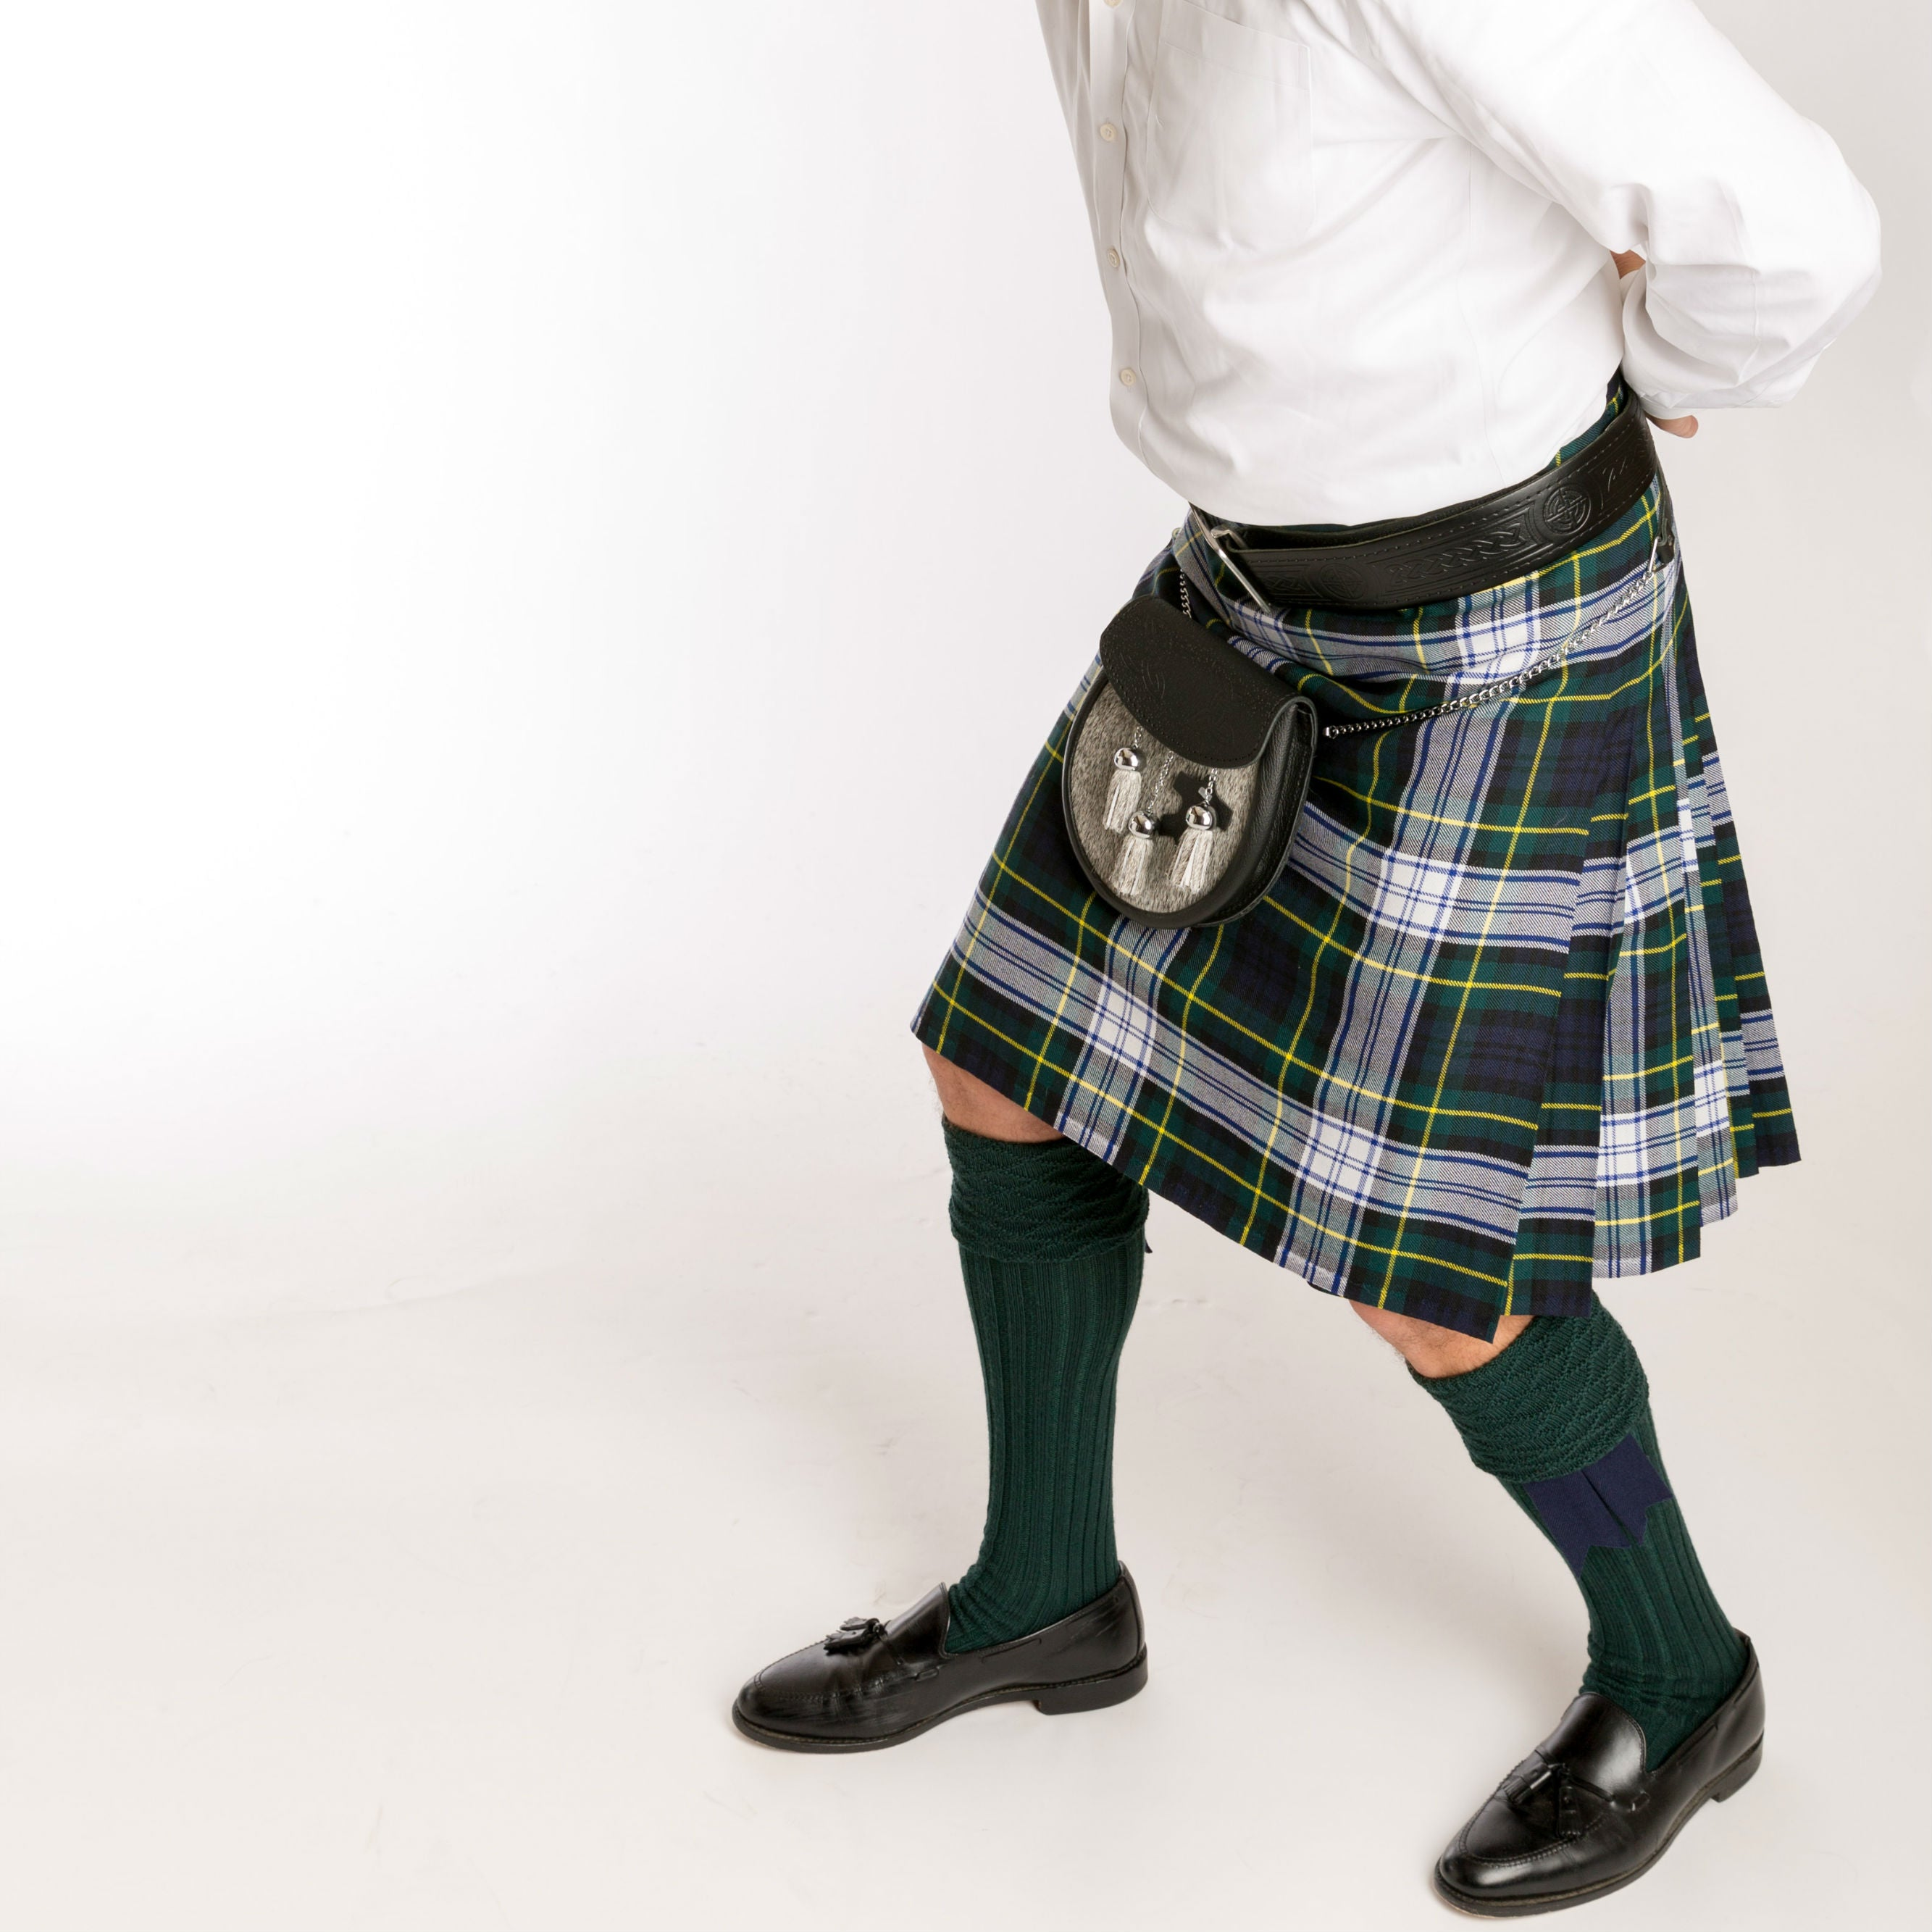 22f7cace7b4d Men s Casual Kilt.  449.95. Compare at  0 USD. Color Gordon Dress Tartan